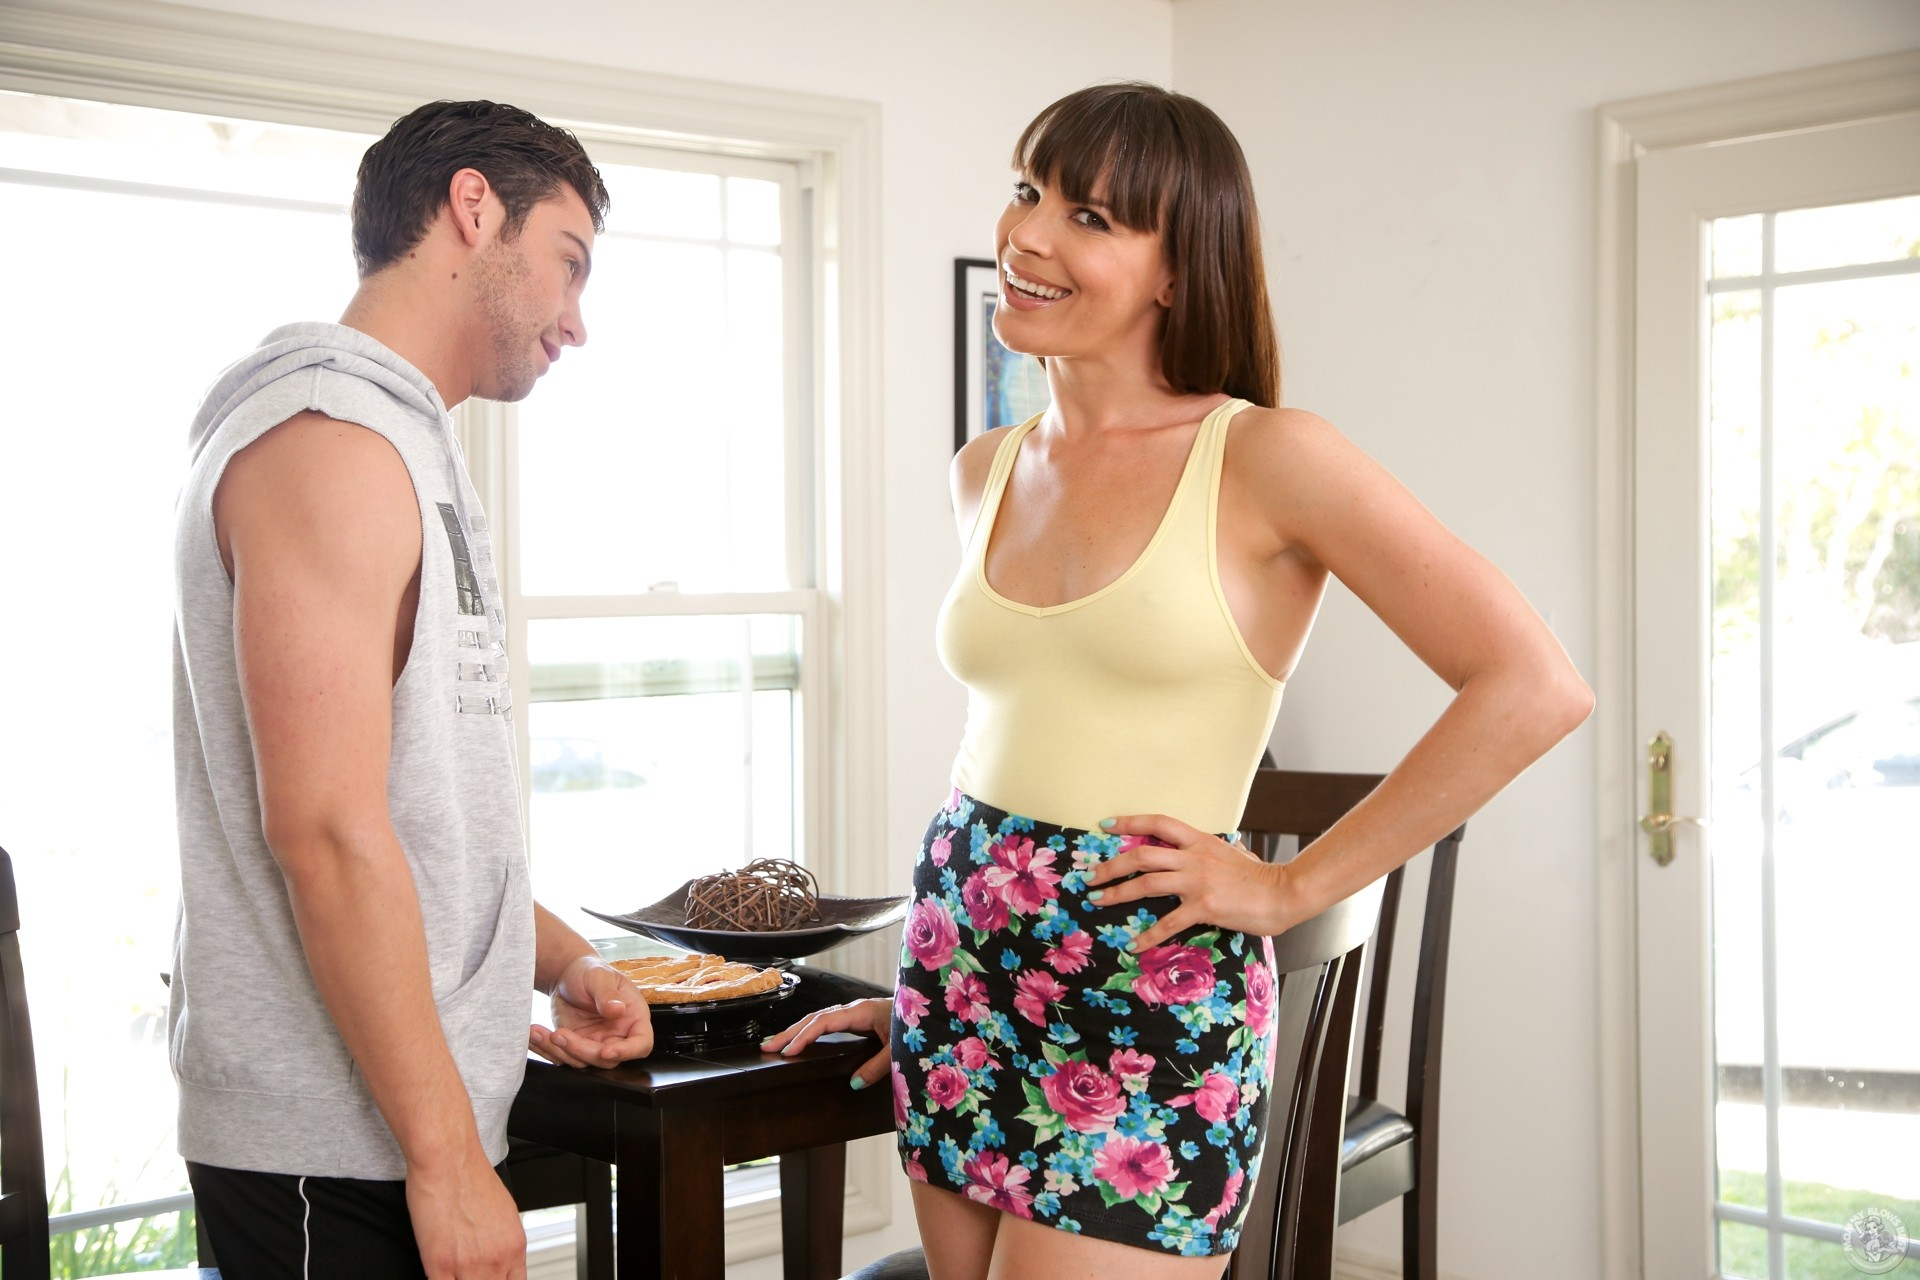 Dana dearmond getting loads of milky white spearm